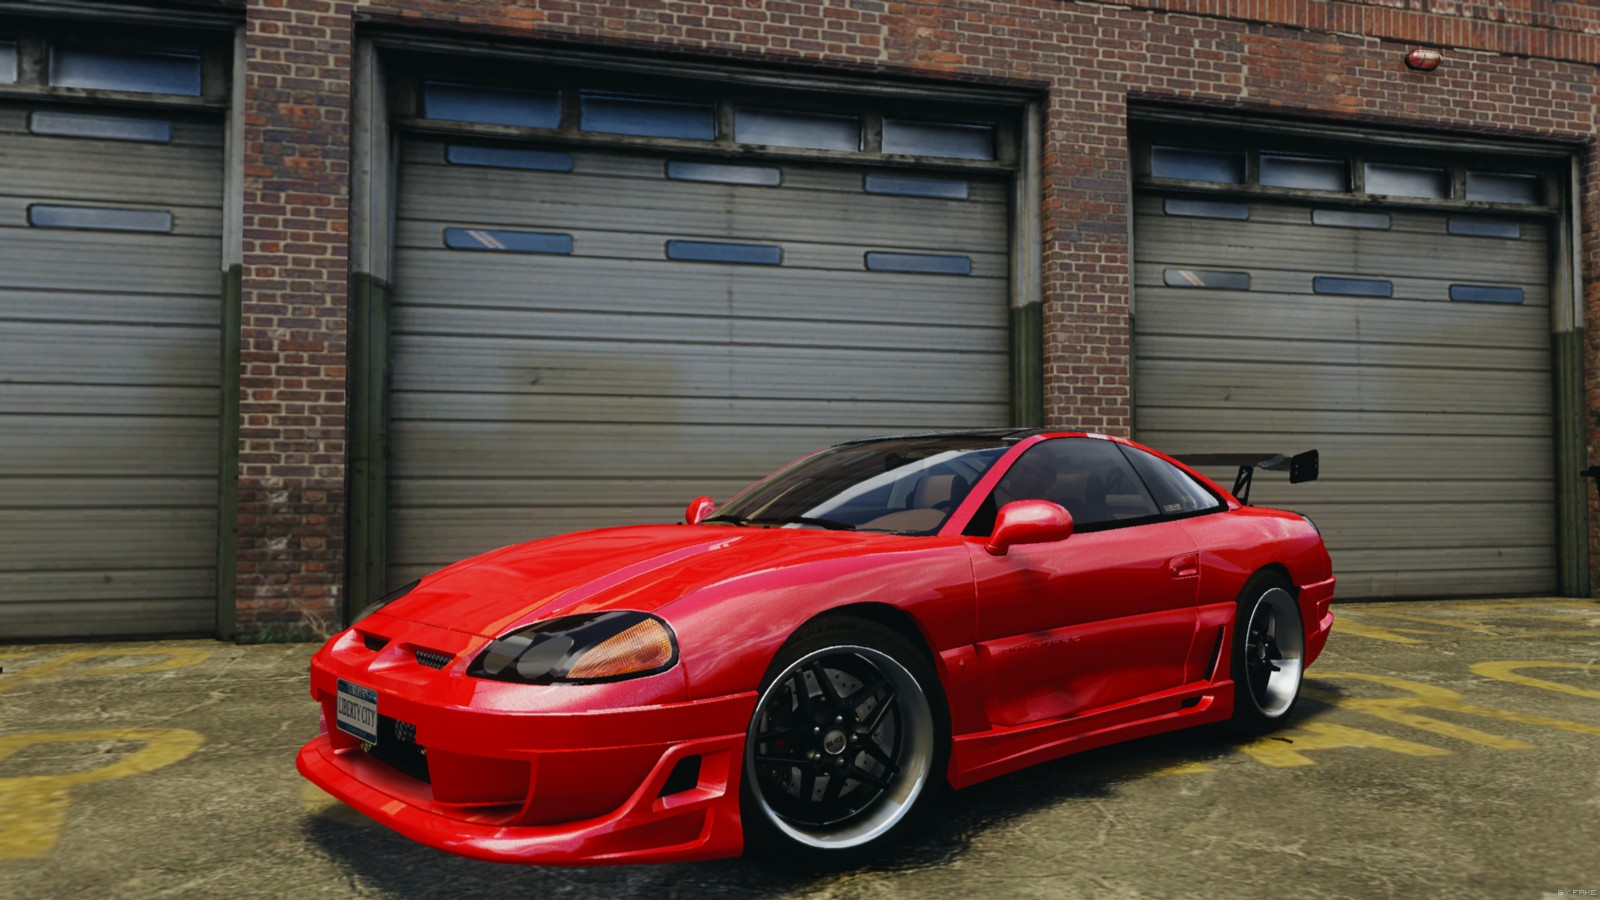 1996 Dodge Stealth #3